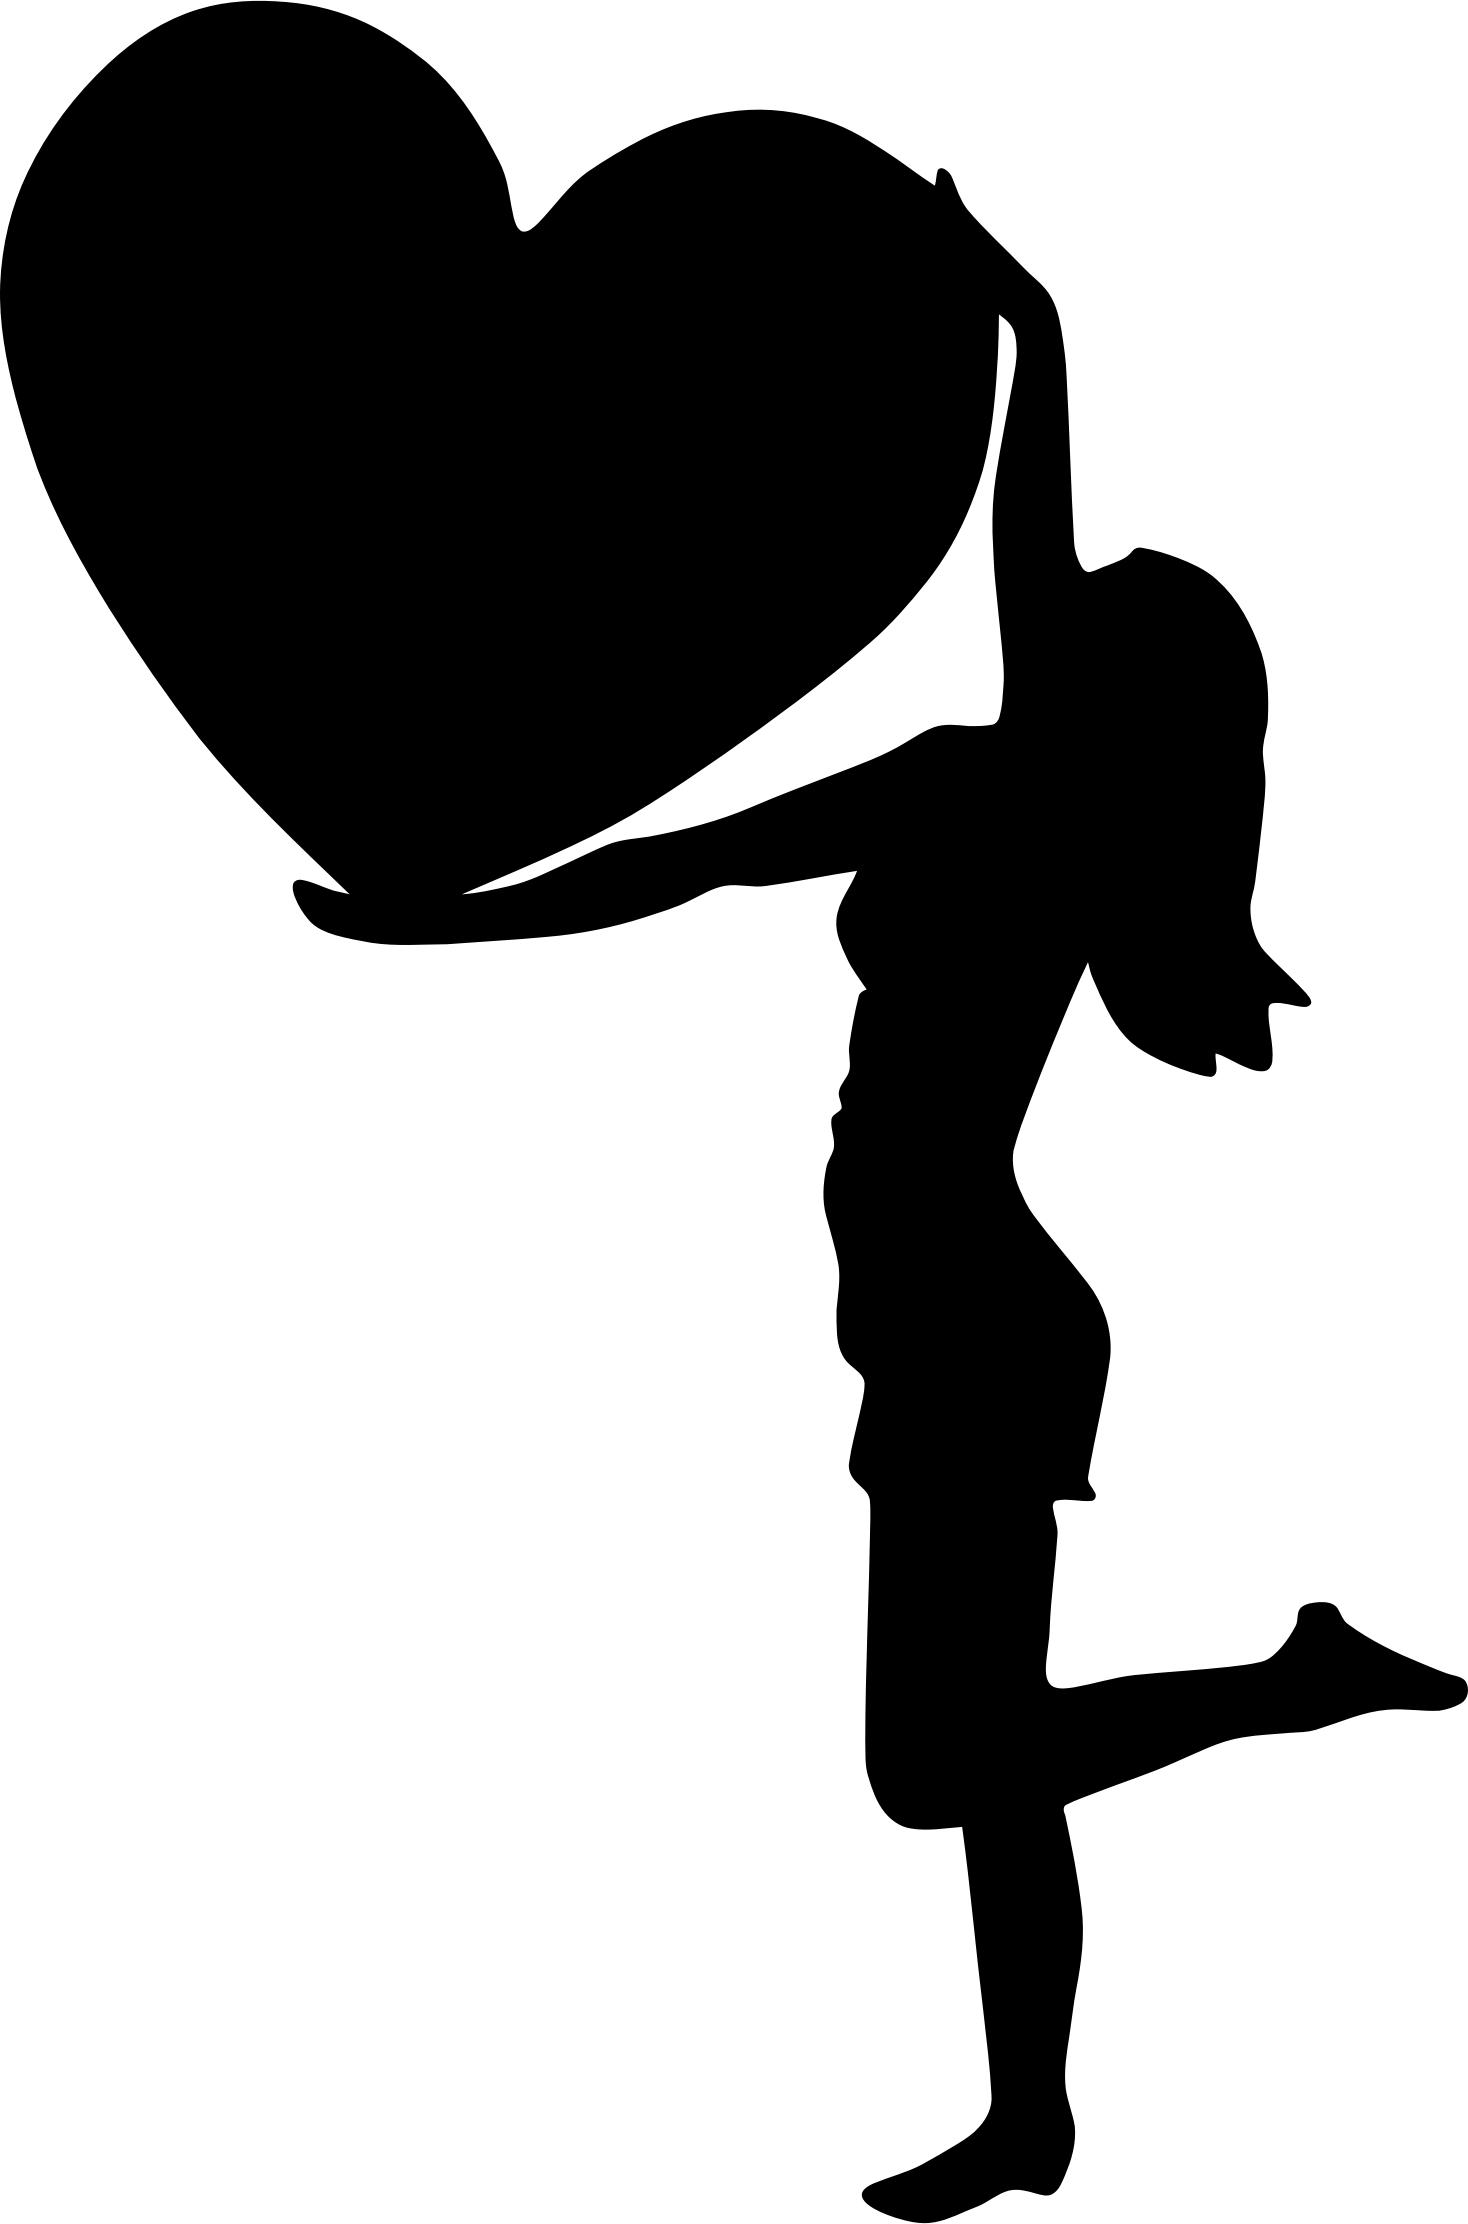 1468x2224 Woman With Big Heart Silhouette Icons Png